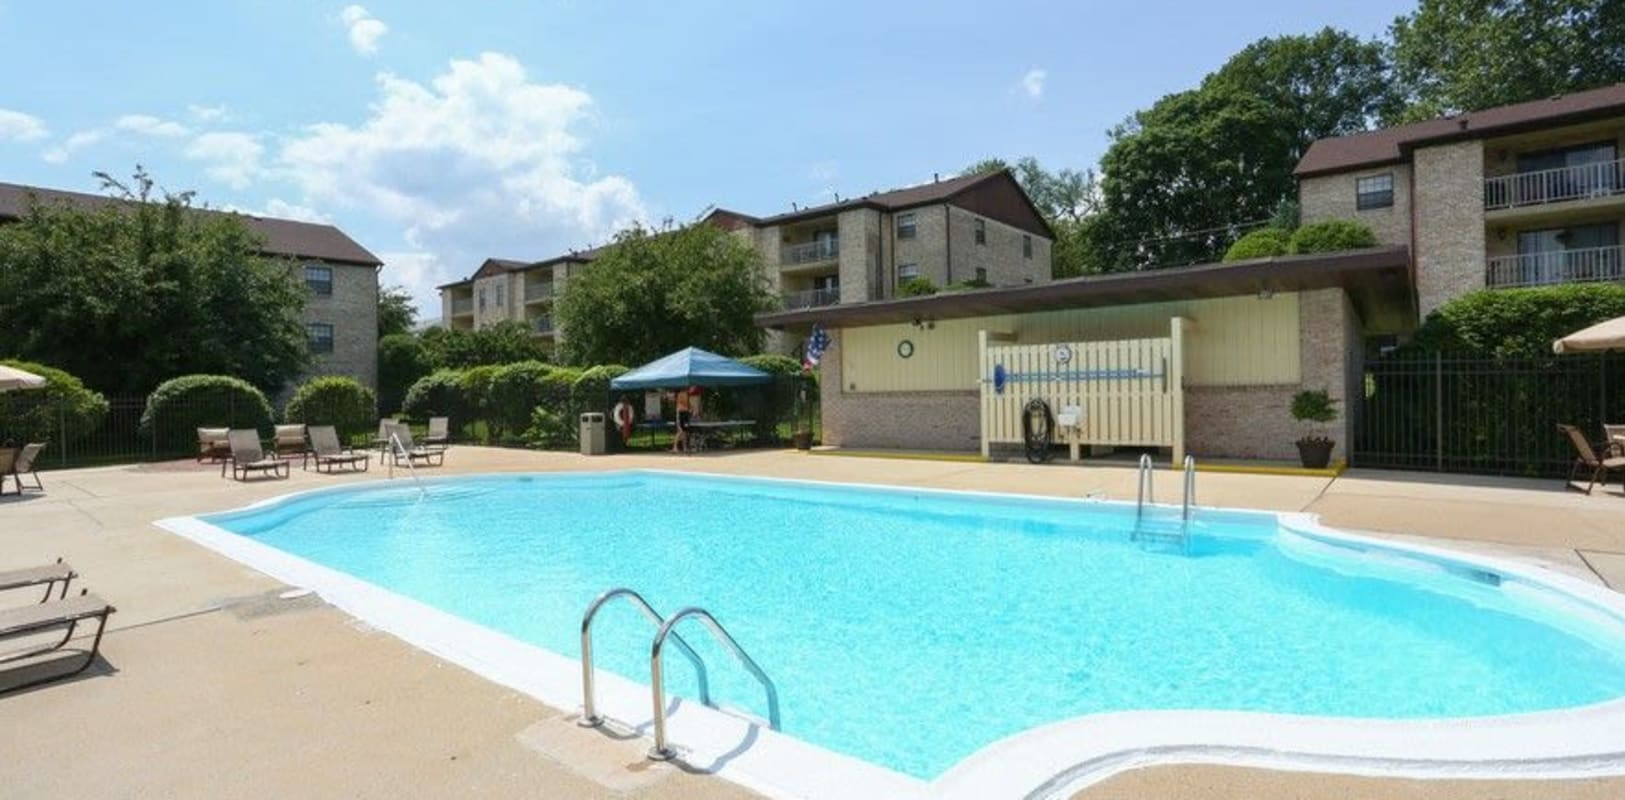 Resort-style swimming pool at Country Club in Reading, Pennsylvania